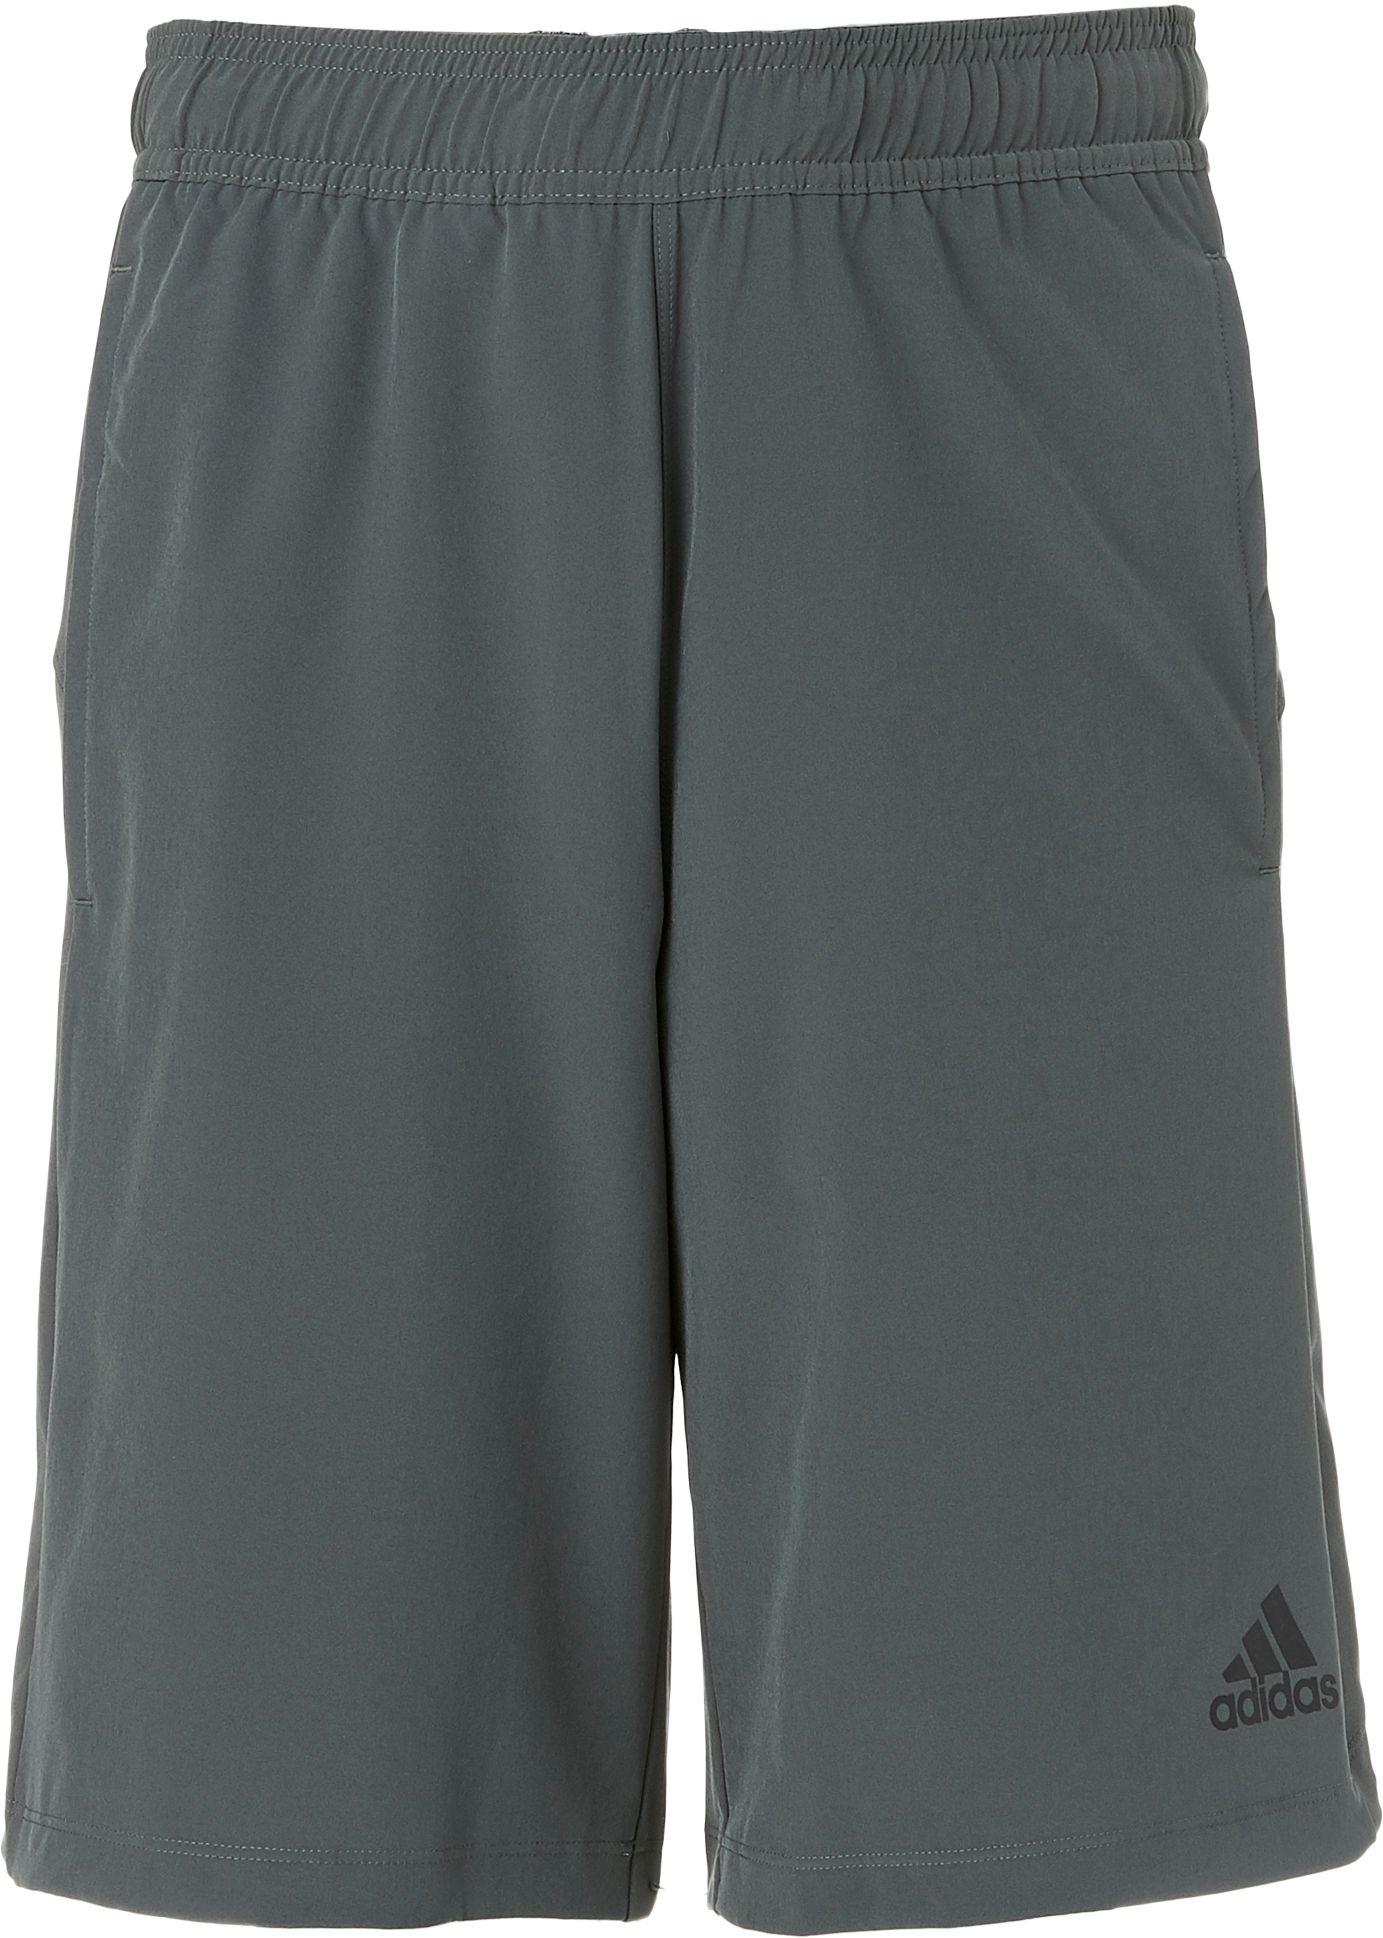 adidas 88387 shorts. product image · adidas men\u0027s axis team issue woven shorts 88387 t